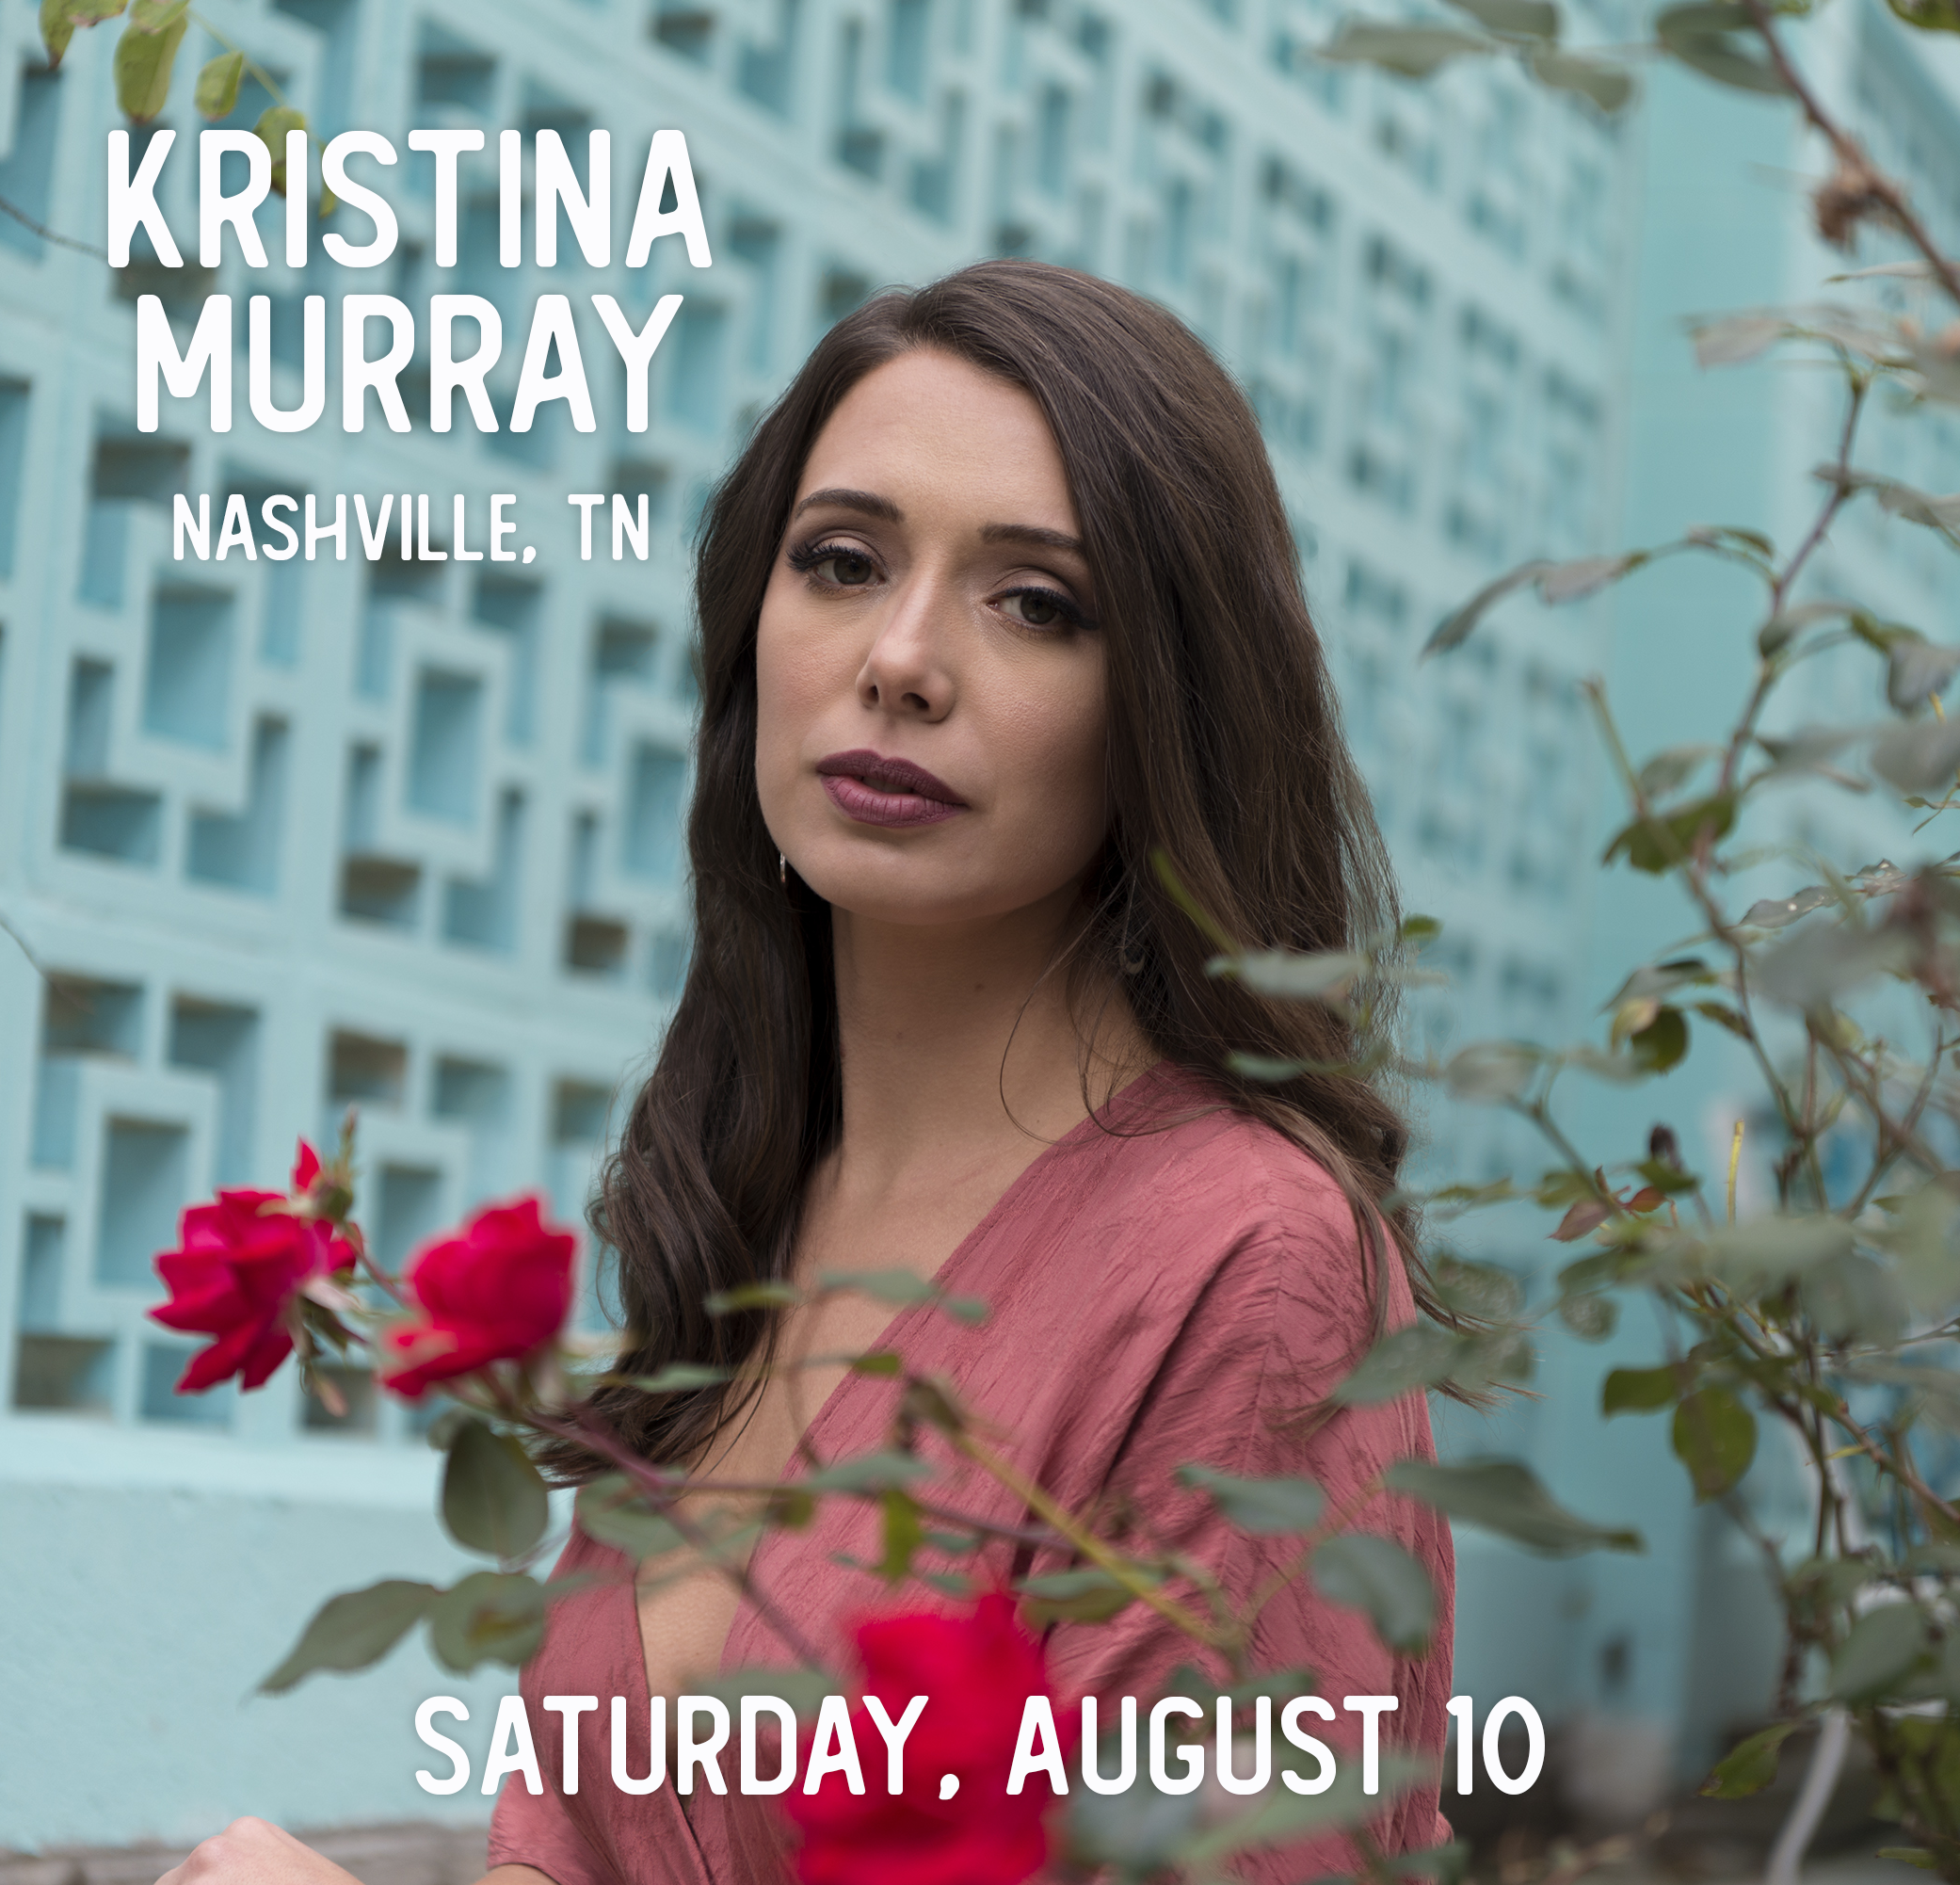 Kristina-Murray_Announc-Graphic-Final.png